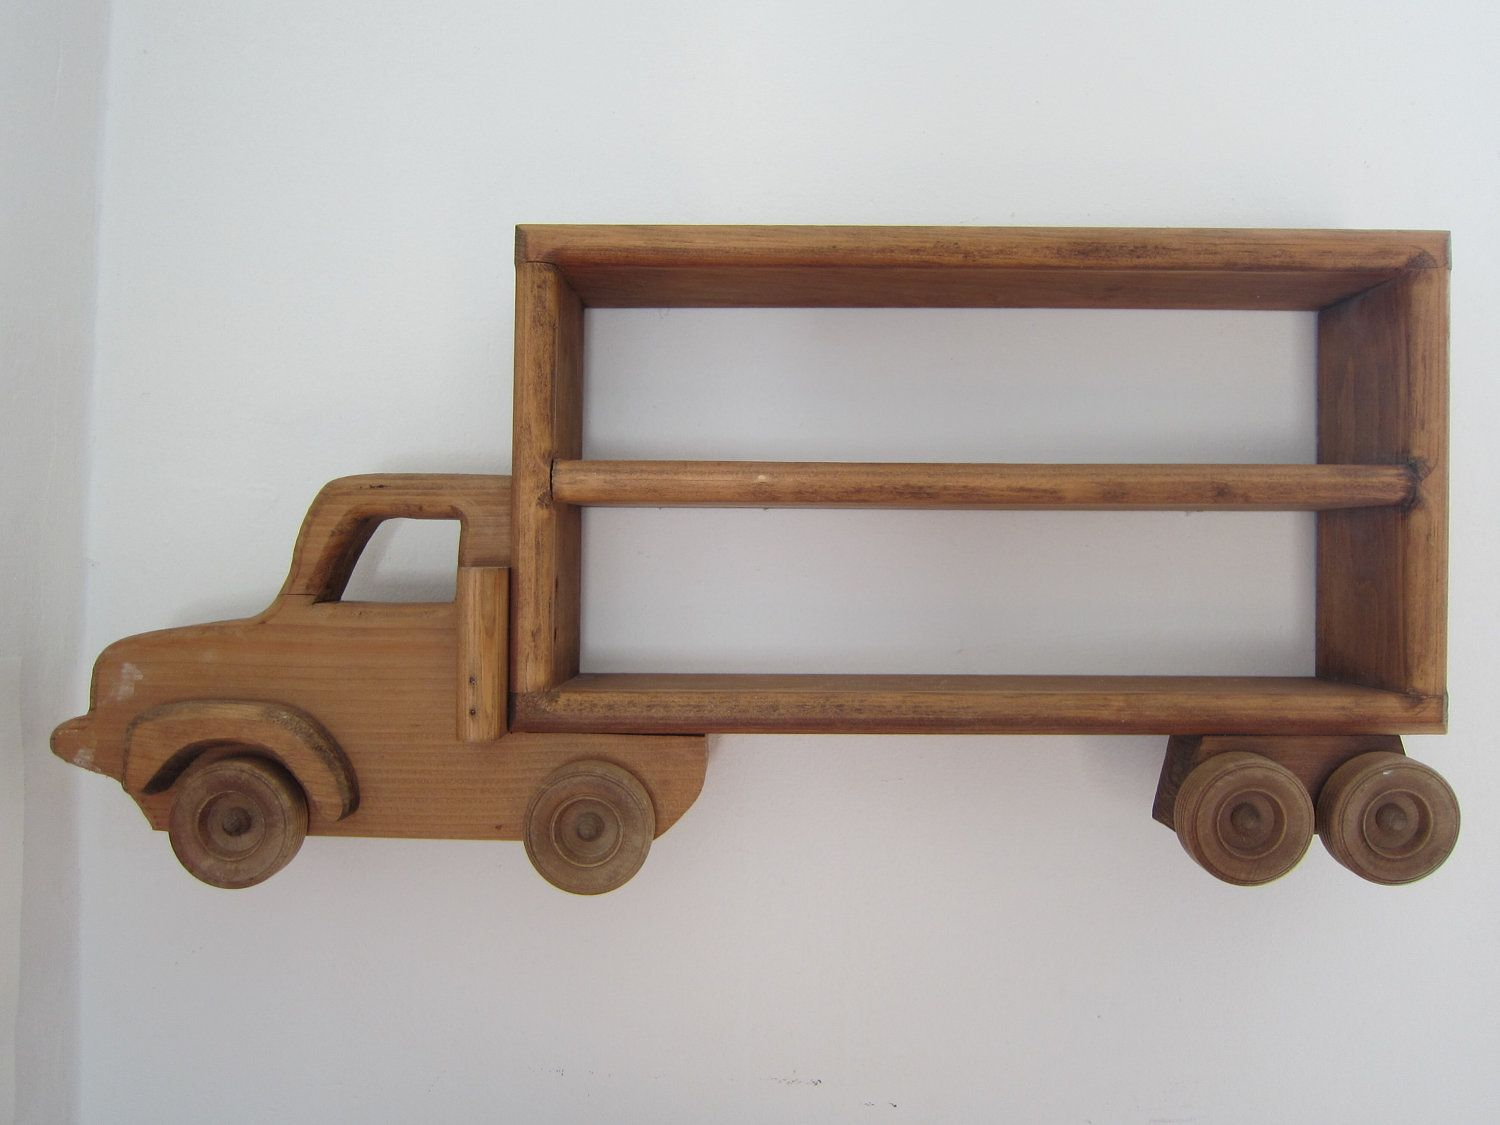 Truck shaped wall shelf rustic vintage via etsy ian matthew truck shaped wall shelf rustic vintage via etsy amipublicfo Gallery